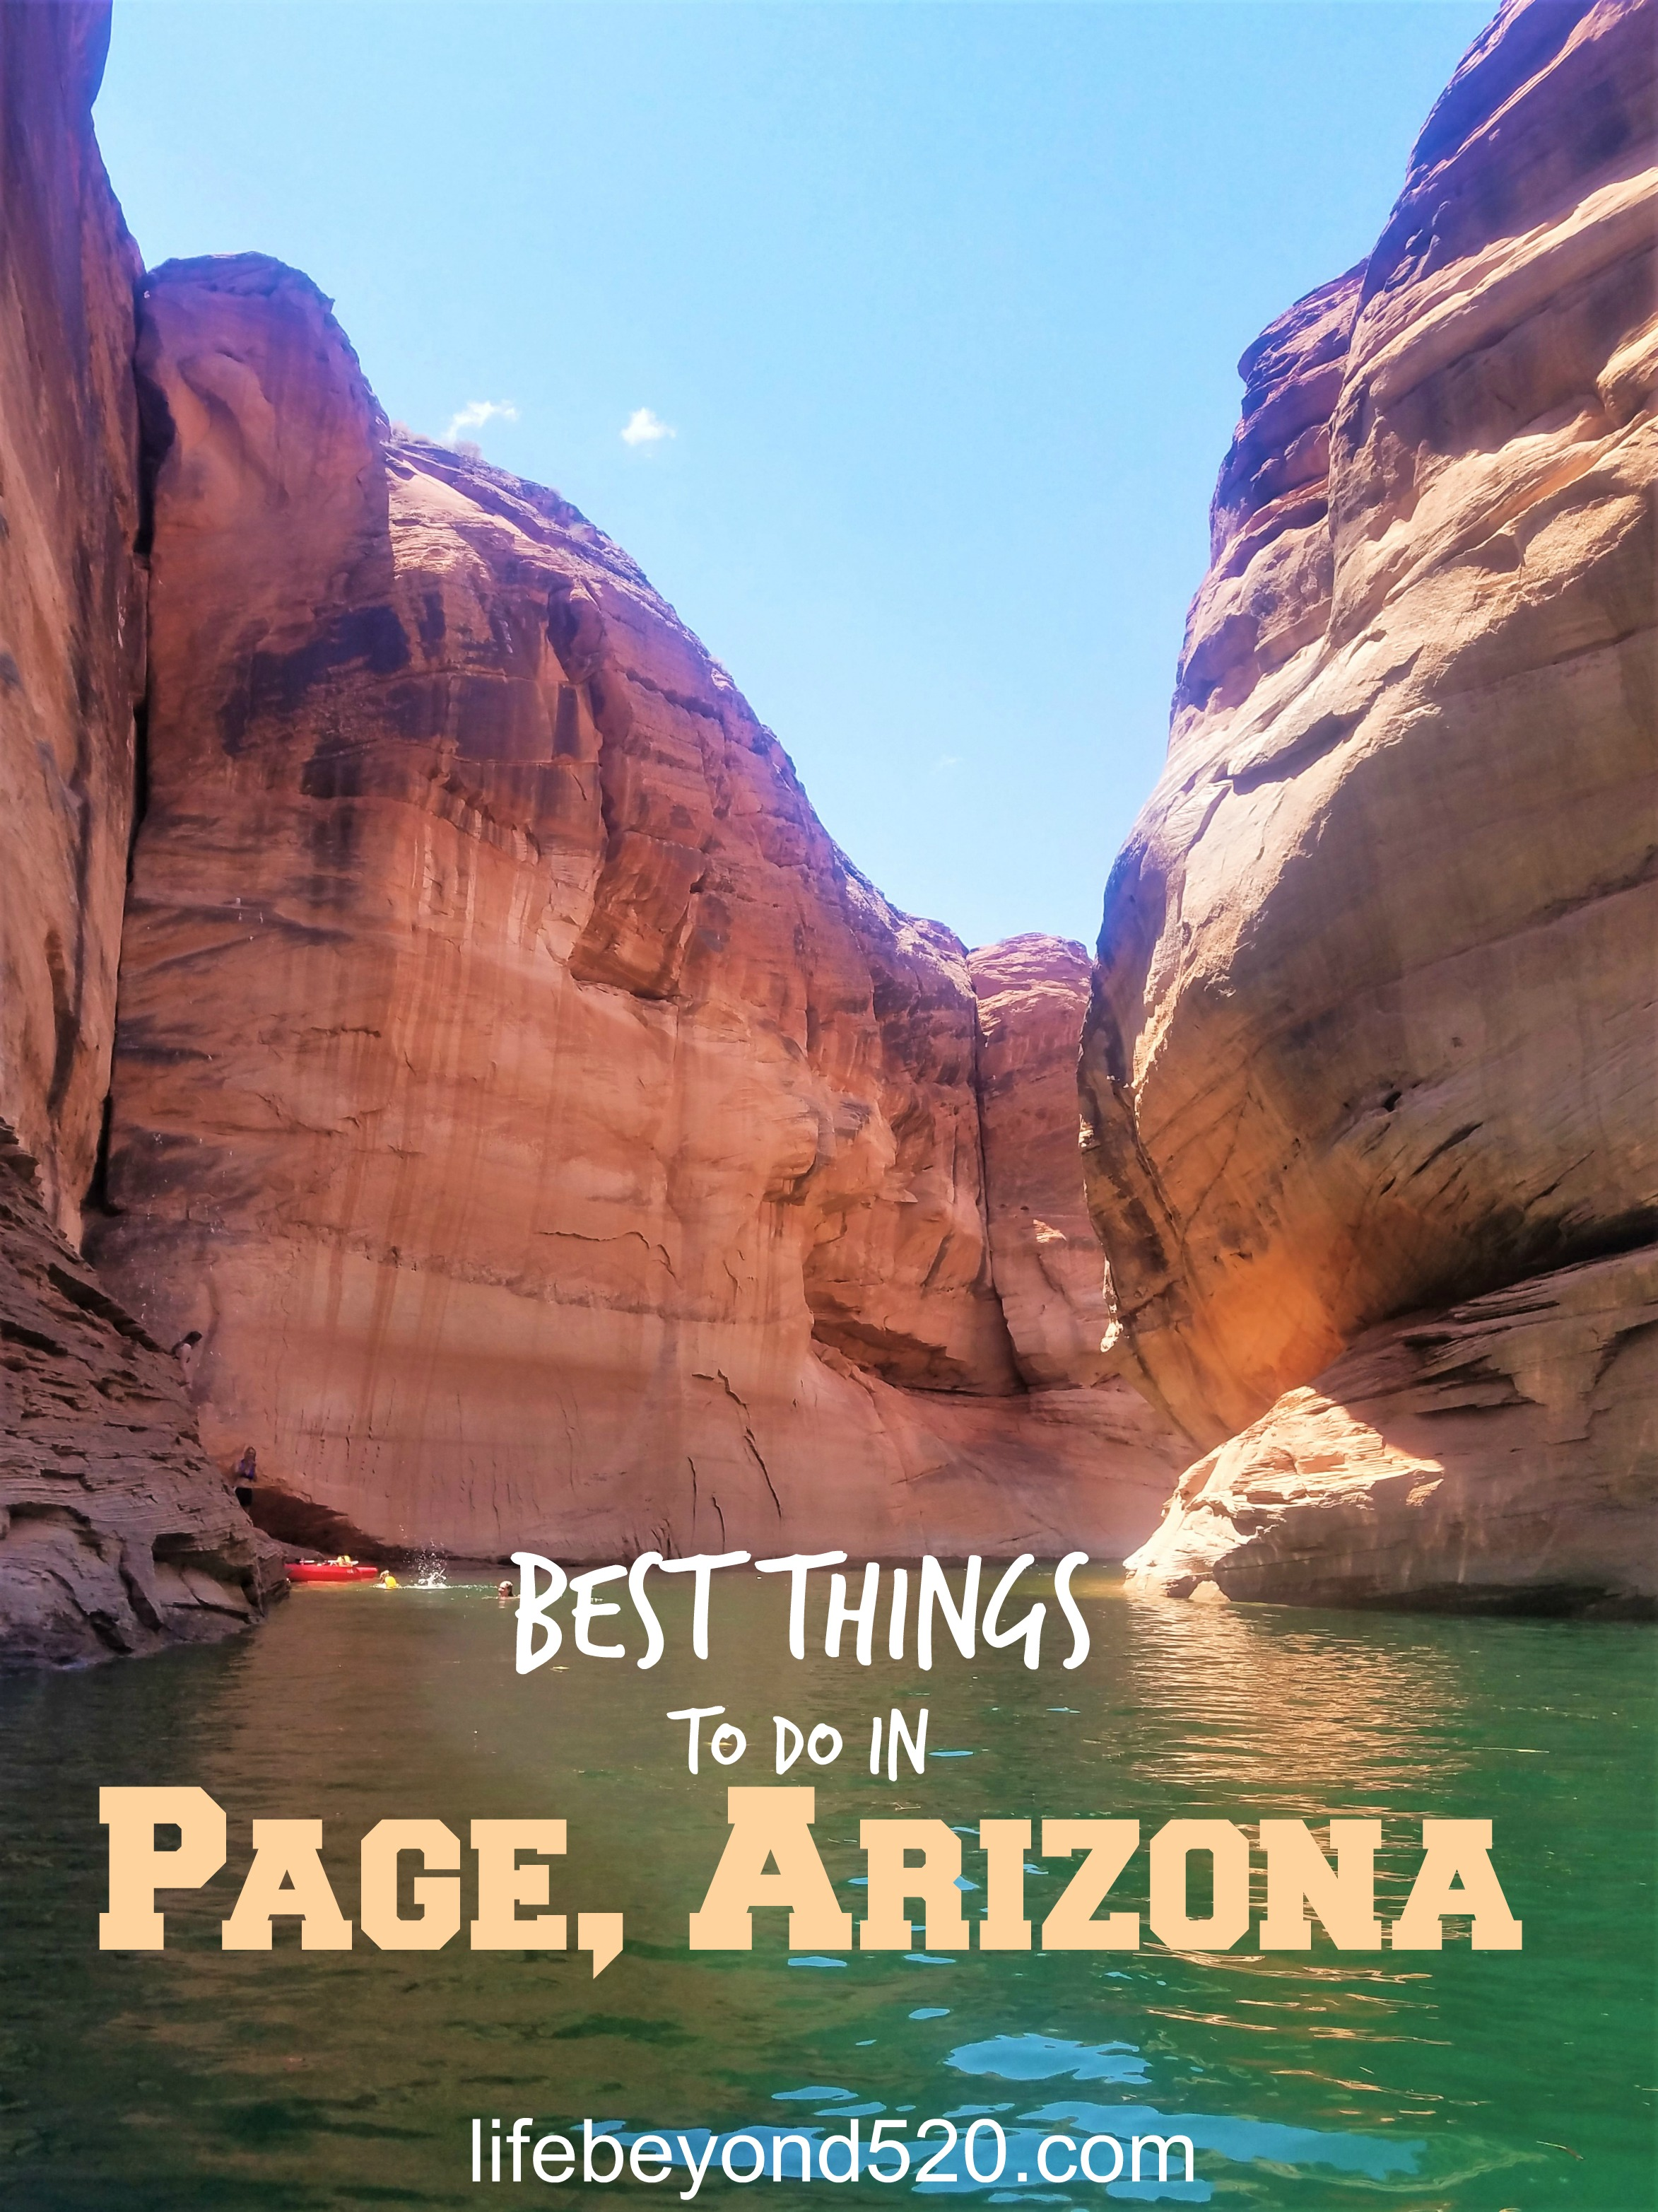 Things to do in Page, Arizona - Life Beyond 520